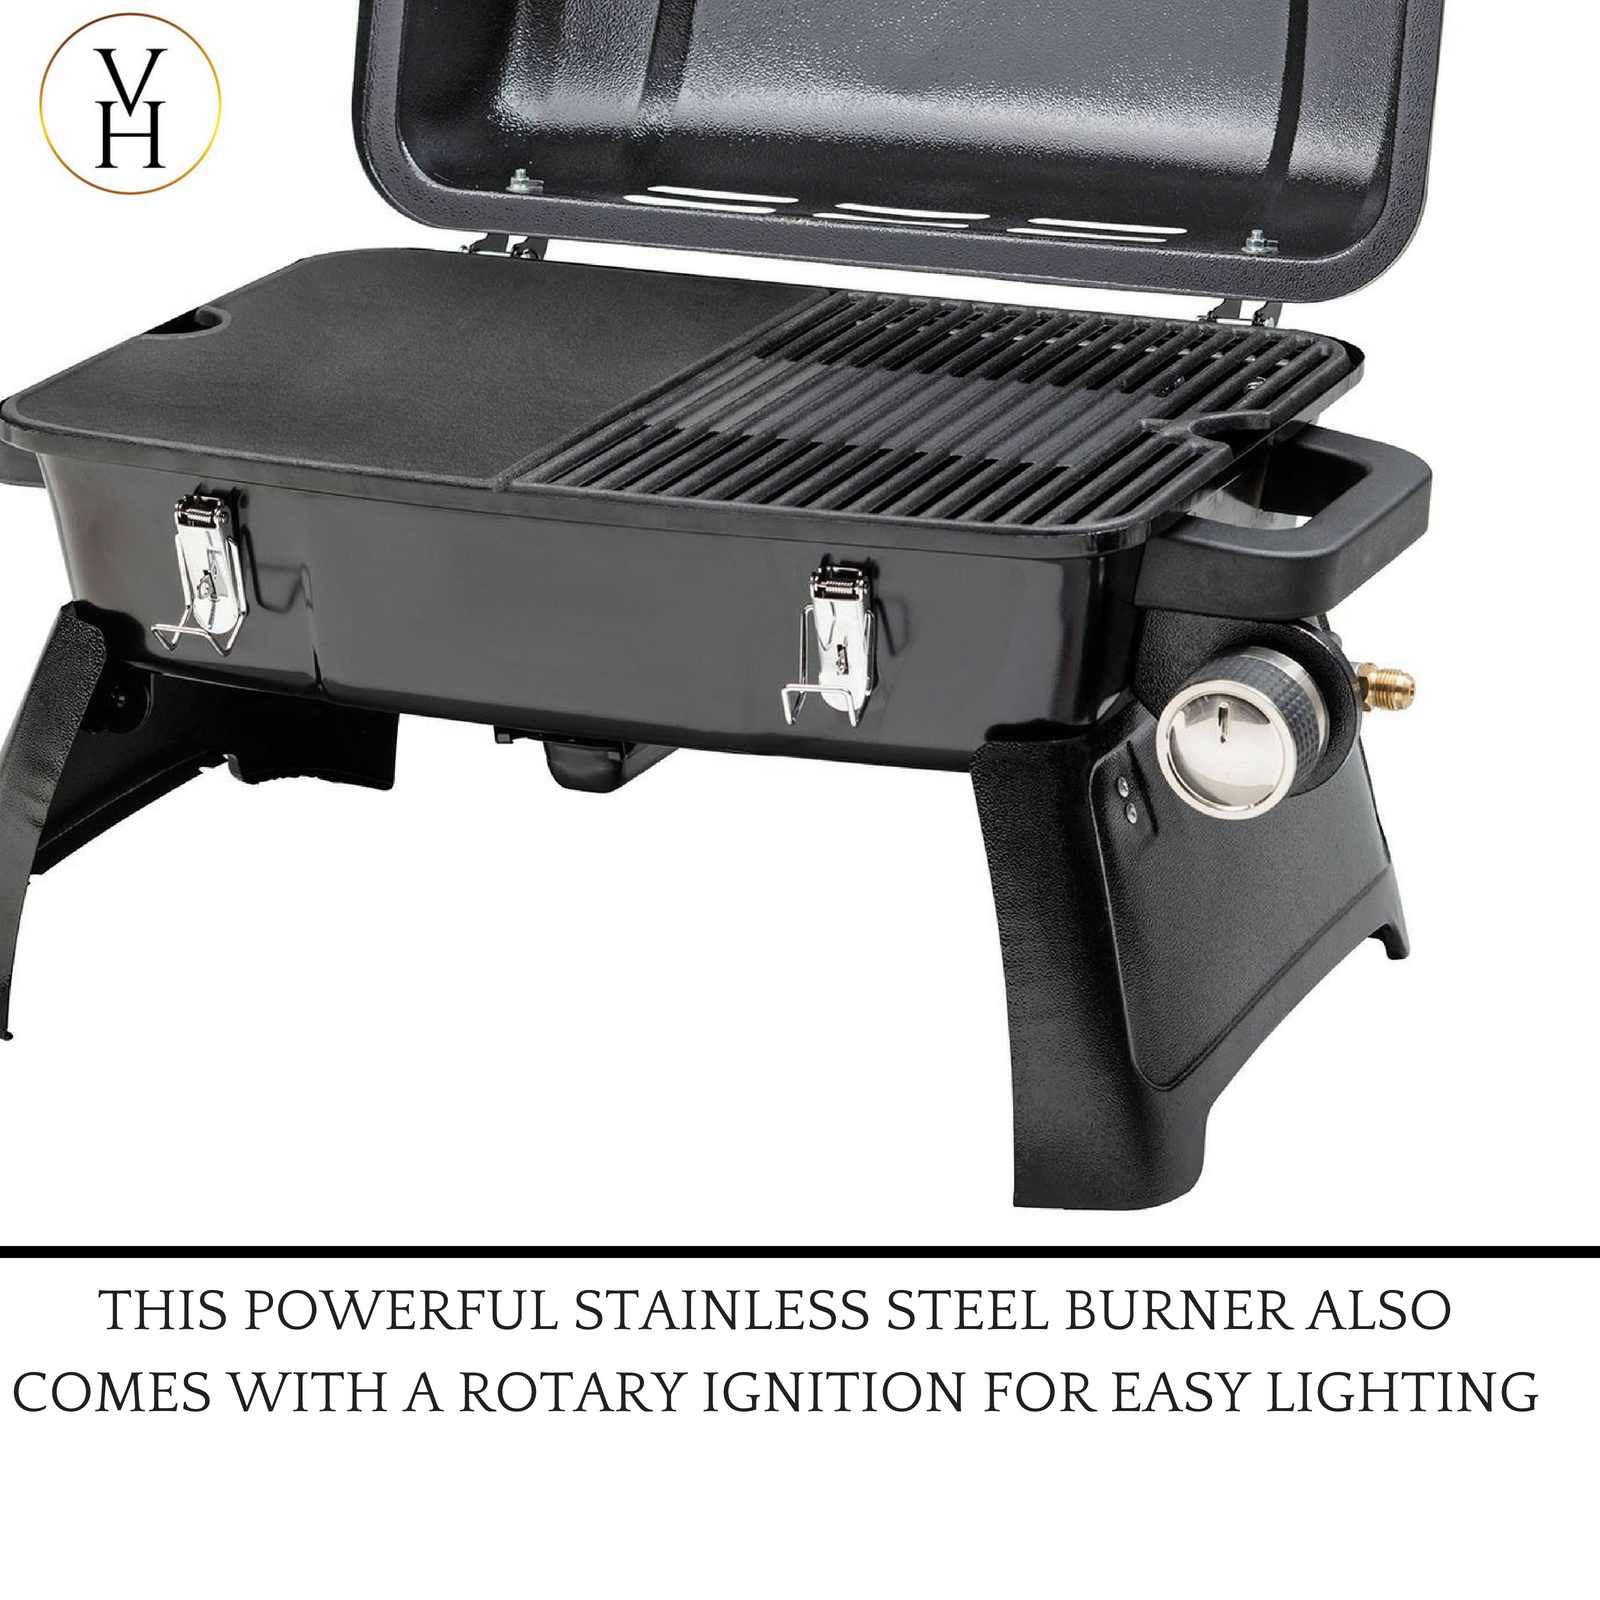 Gasmate Voyager Portable Gas Bbq Review details about portable gas bbq grill lpg stove outdoor camping stainless  steel thermometer new